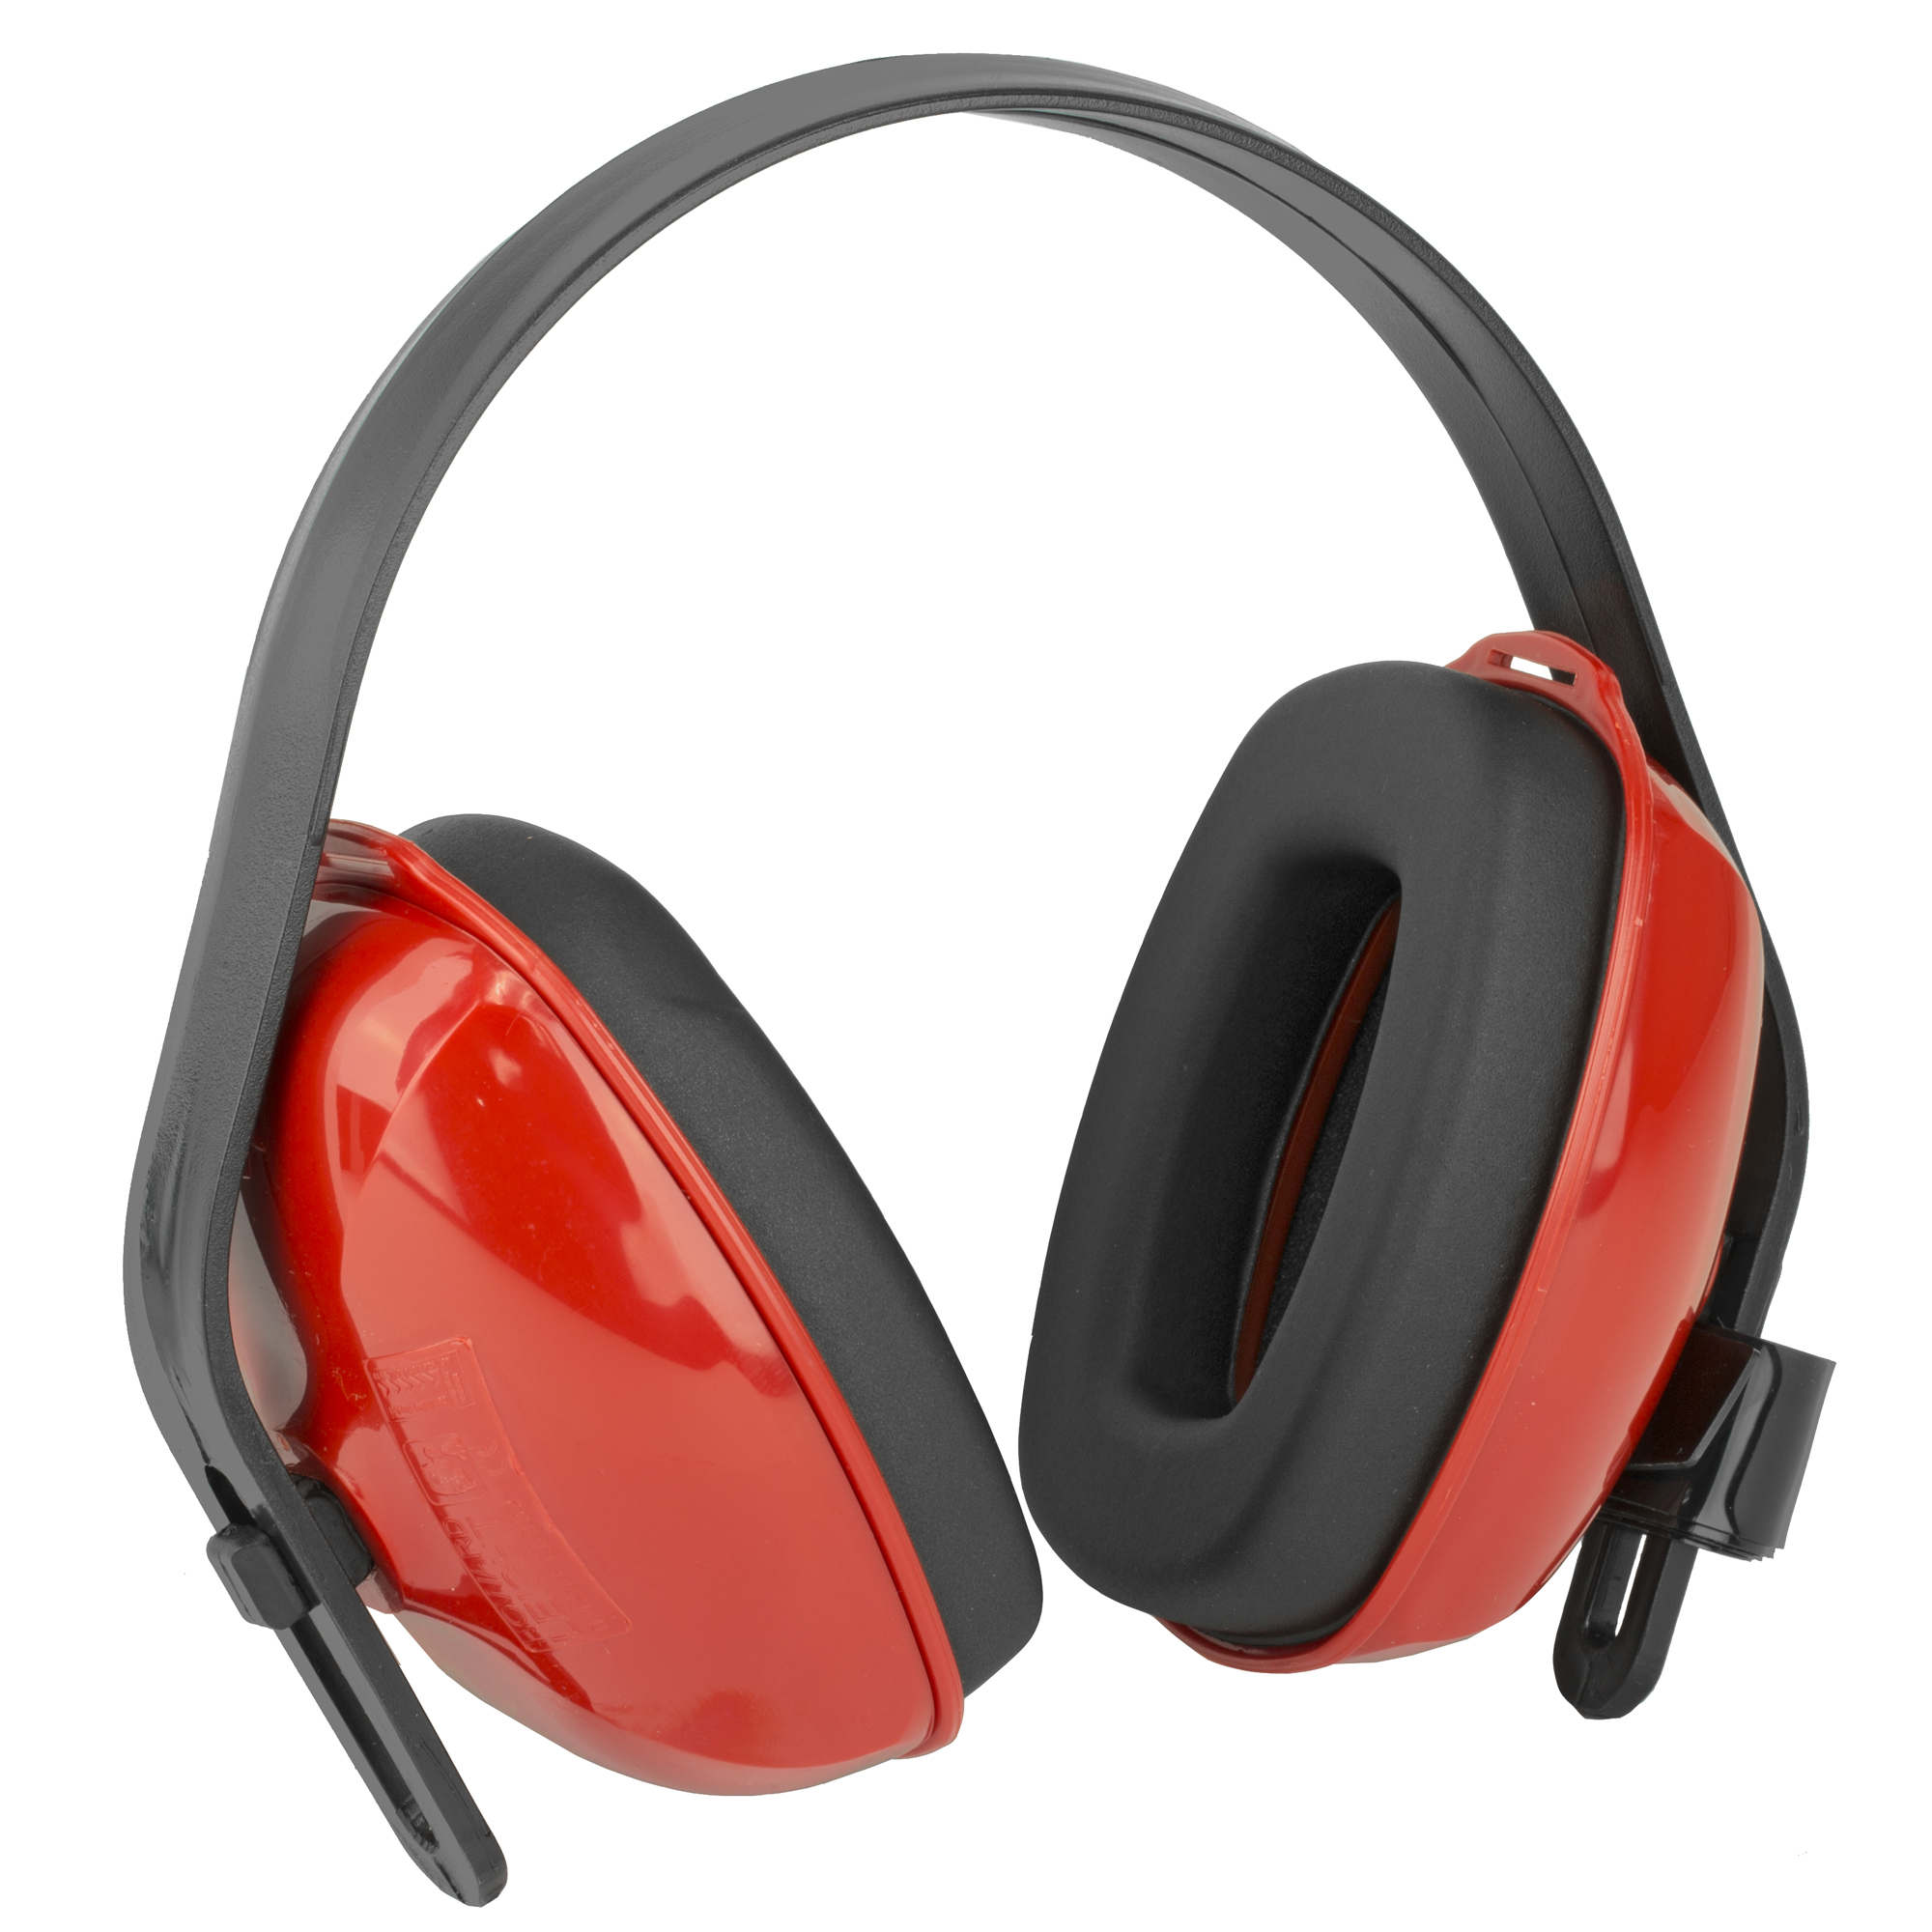 """These Earmuffs can be worn over-the-head"""" behind-the-head or under-the-chin. They feature Dialectic construction suitable for electrical environments and a Noise Reduction Rating (NRR) 25."""